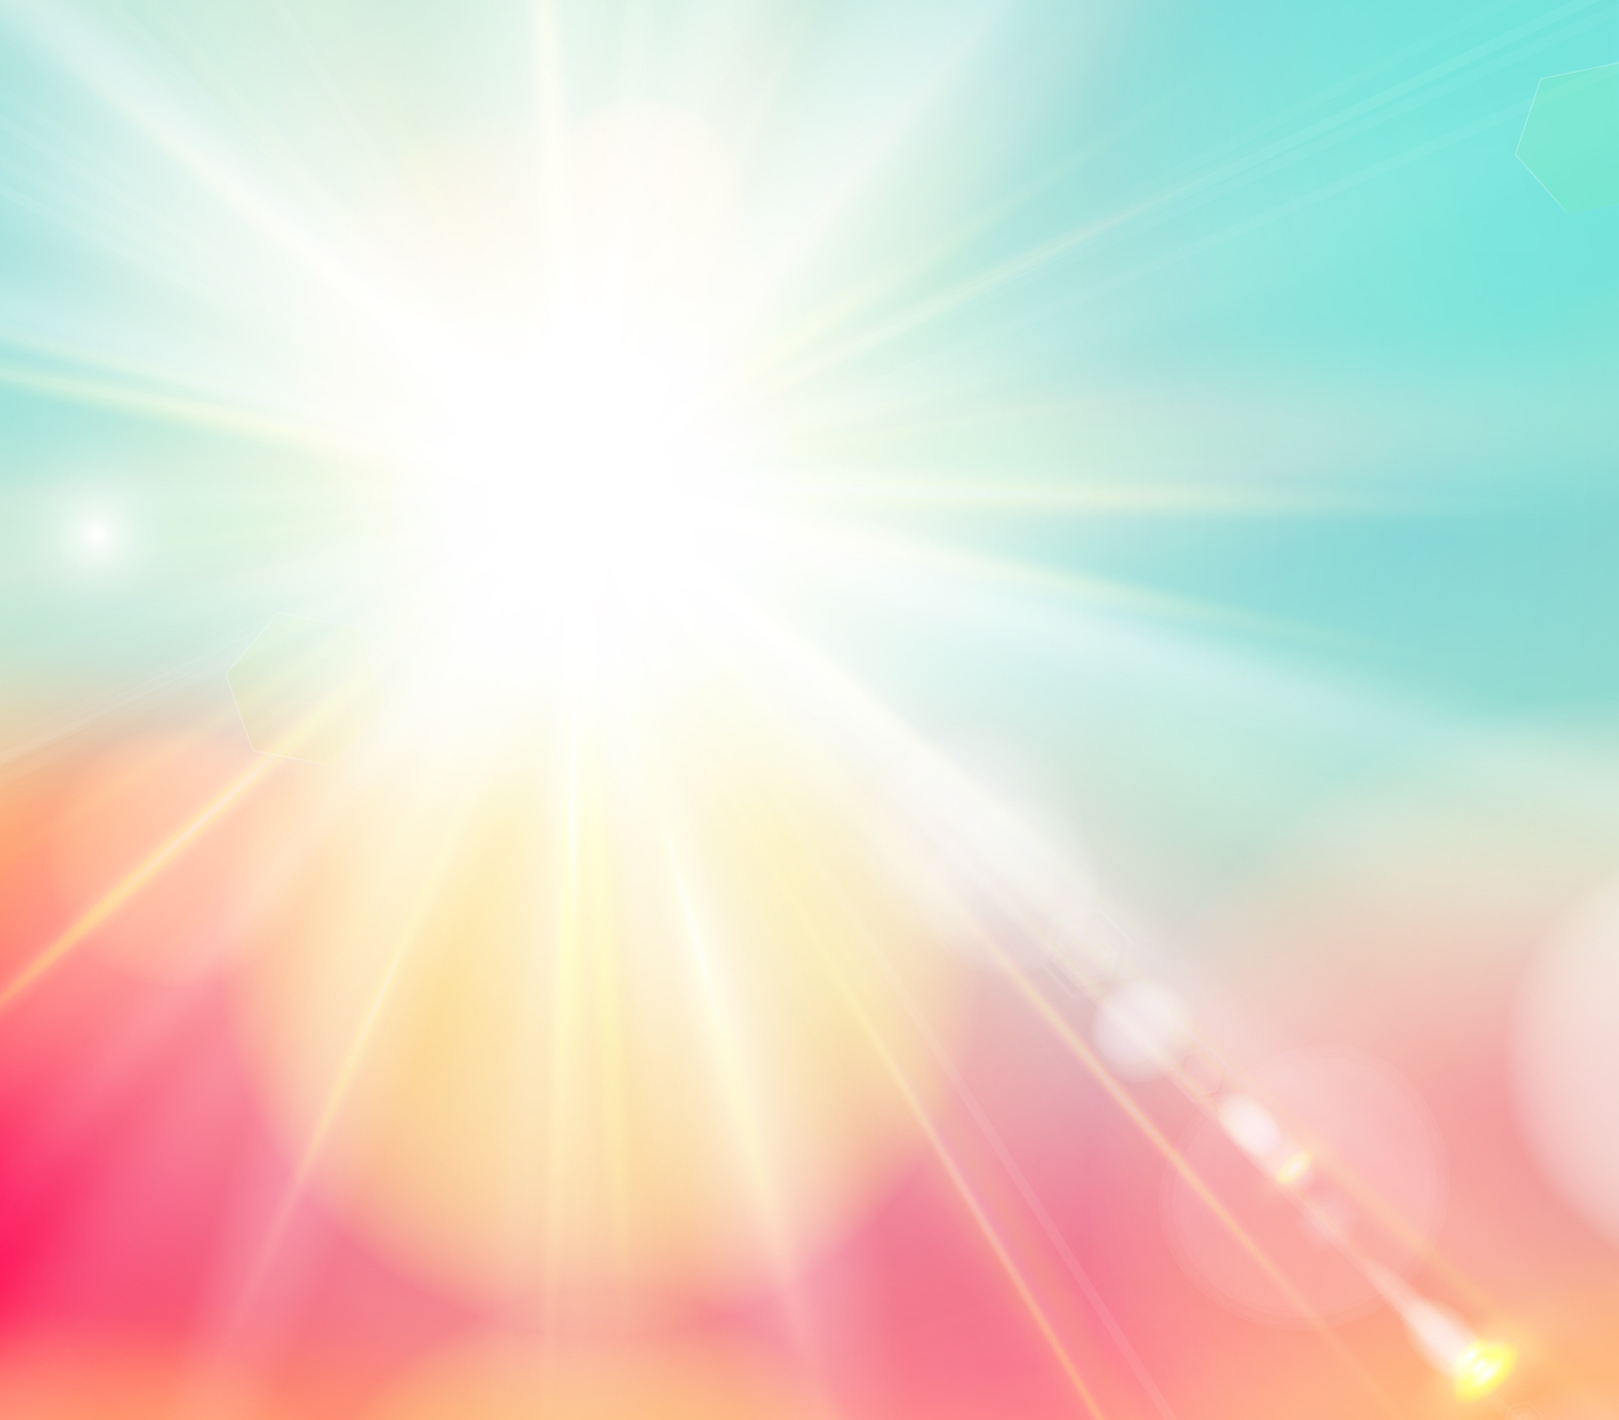 Align & Shine - A group for women to realign, reignite and burn brighter than ever before by tapping into our personal power and re-discovering what makes us who we naturally, authentically are in order to share our selves and our gifts with the world.